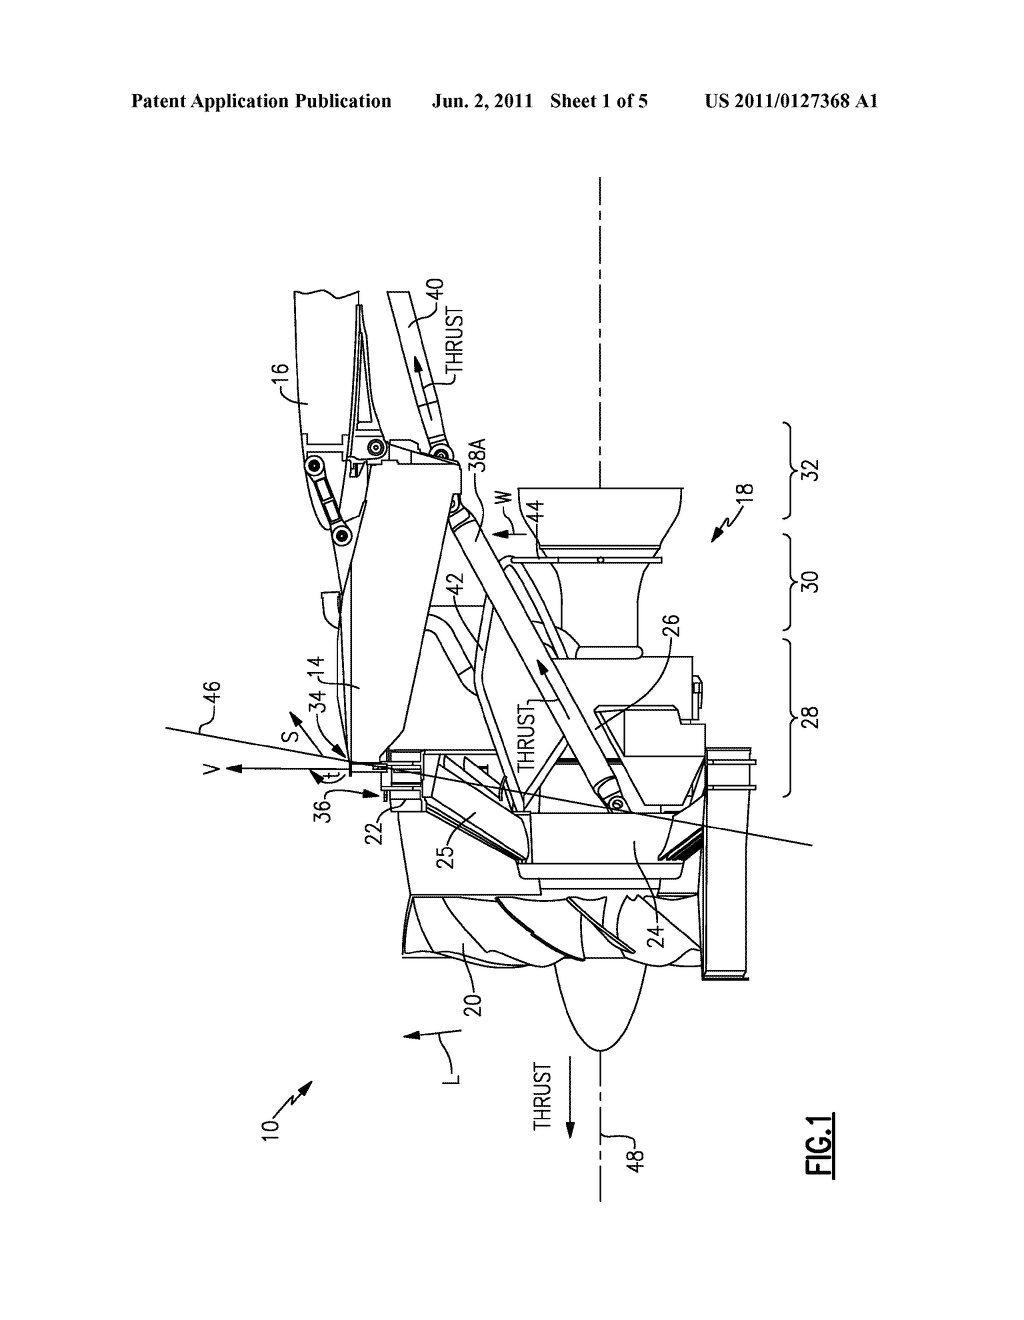 single plane mount system for gas turbine engine diagram Rocket Engine Diagram single plane mount system for gas turbine engine diagram schematic and image 02